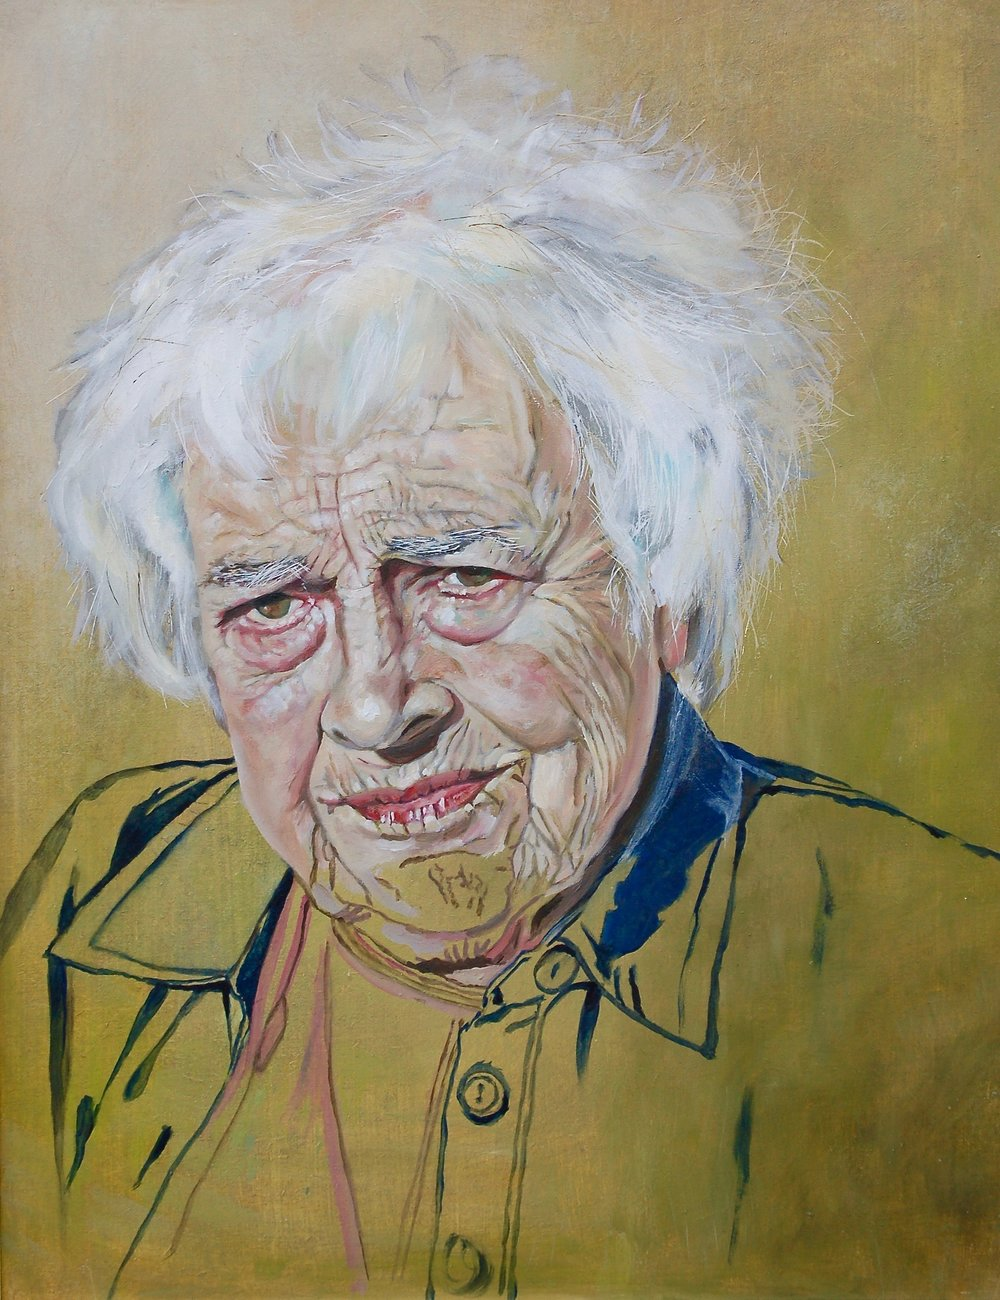 Fiona Hackman, Fiona Hackman - Betty my M.i.L., Oil on board., H 42cm W 35cm D 0.6cm